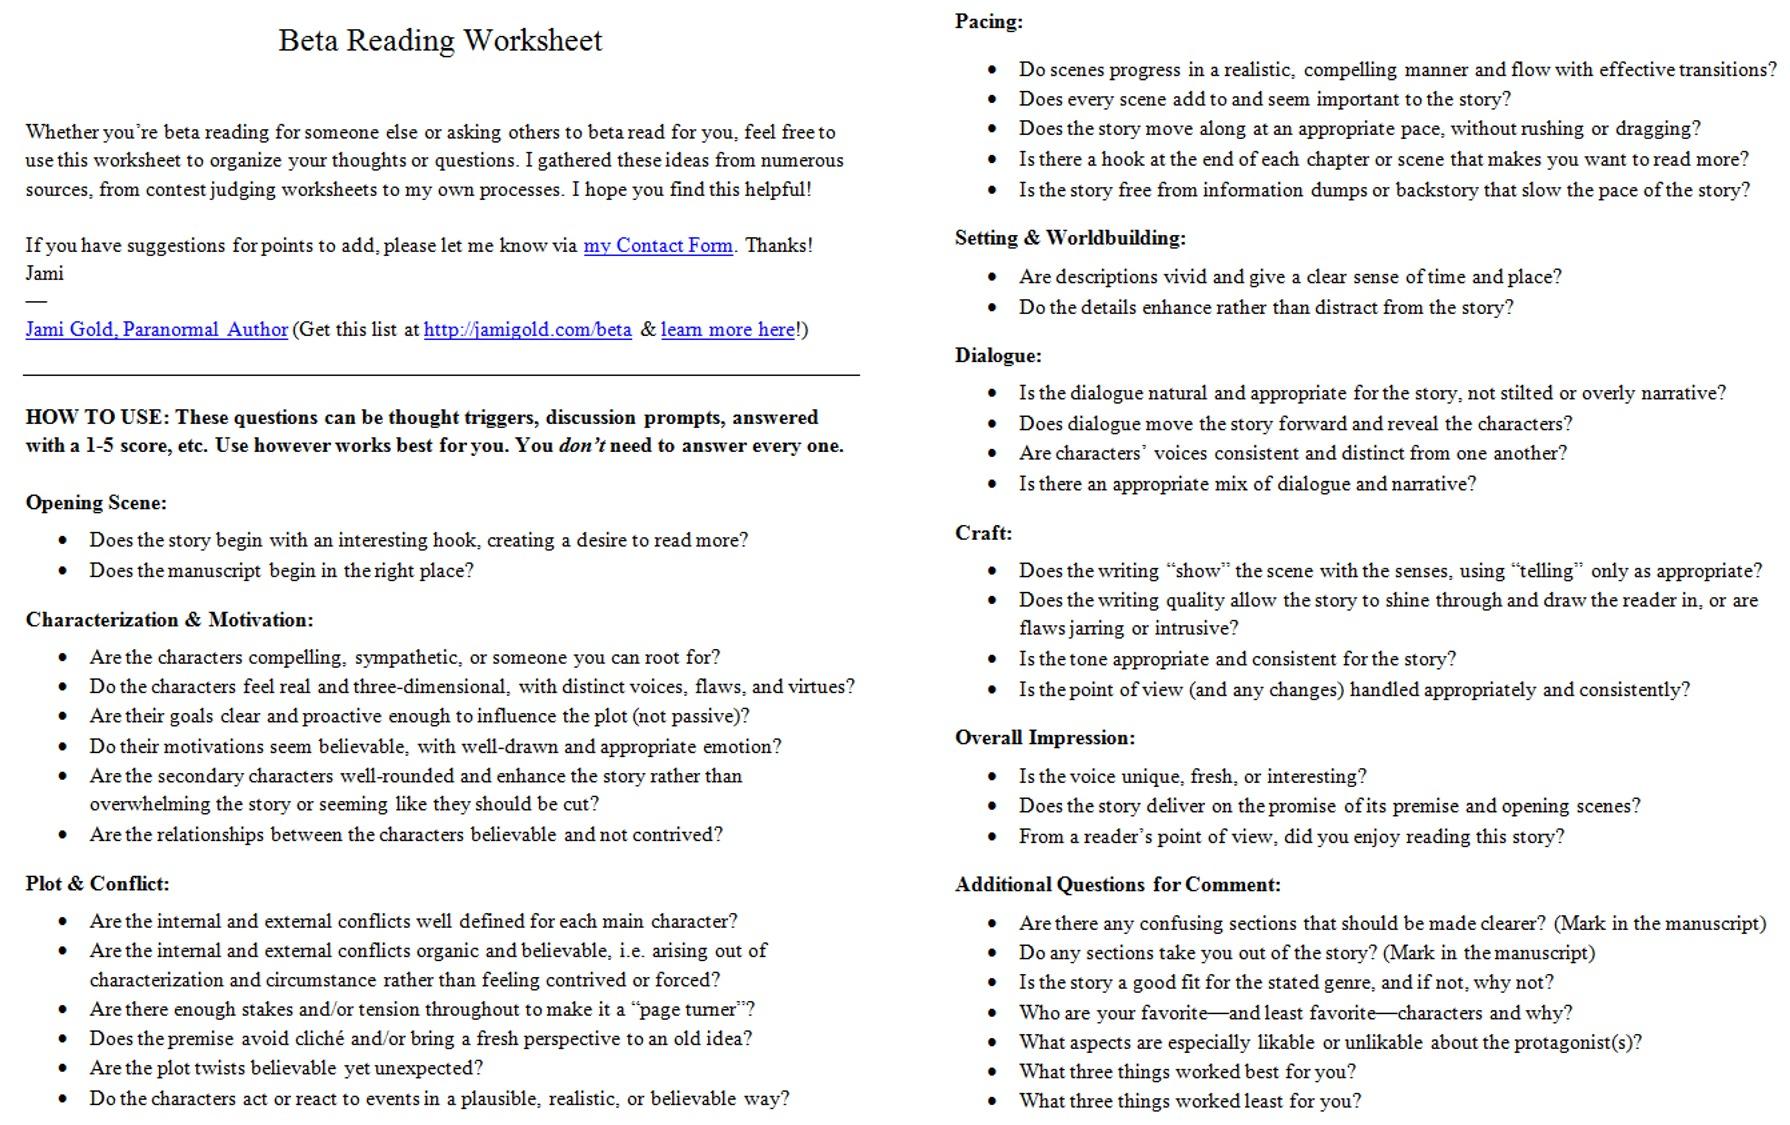 Weirdmailus  Surprising Worksheets For Writers  Jami Gold Paranormal Author With Remarkable Screen Shot Of The Twopage Beta Reading Worksheet With Captivating All About Me Worksheet Free Printable Also Place Value Kindergarten Worksheets In Addition Place Value Nd Grade Worksheet And Sequence Words Worksheet As Well As Comparative Adjective Worksheets Additionally Kids Math Worksheet From Jamigoldcom With Weirdmailus  Remarkable Worksheets For Writers  Jami Gold Paranormal Author With Captivating Screen Shot Of The Twopage Beta Reading Worksheet And Surprising All About Me Worksheet Free Printable Also Place Value Kindergarten Worksheets In Addition Place Value Nd Grade Worksheet From Jamigoldcom